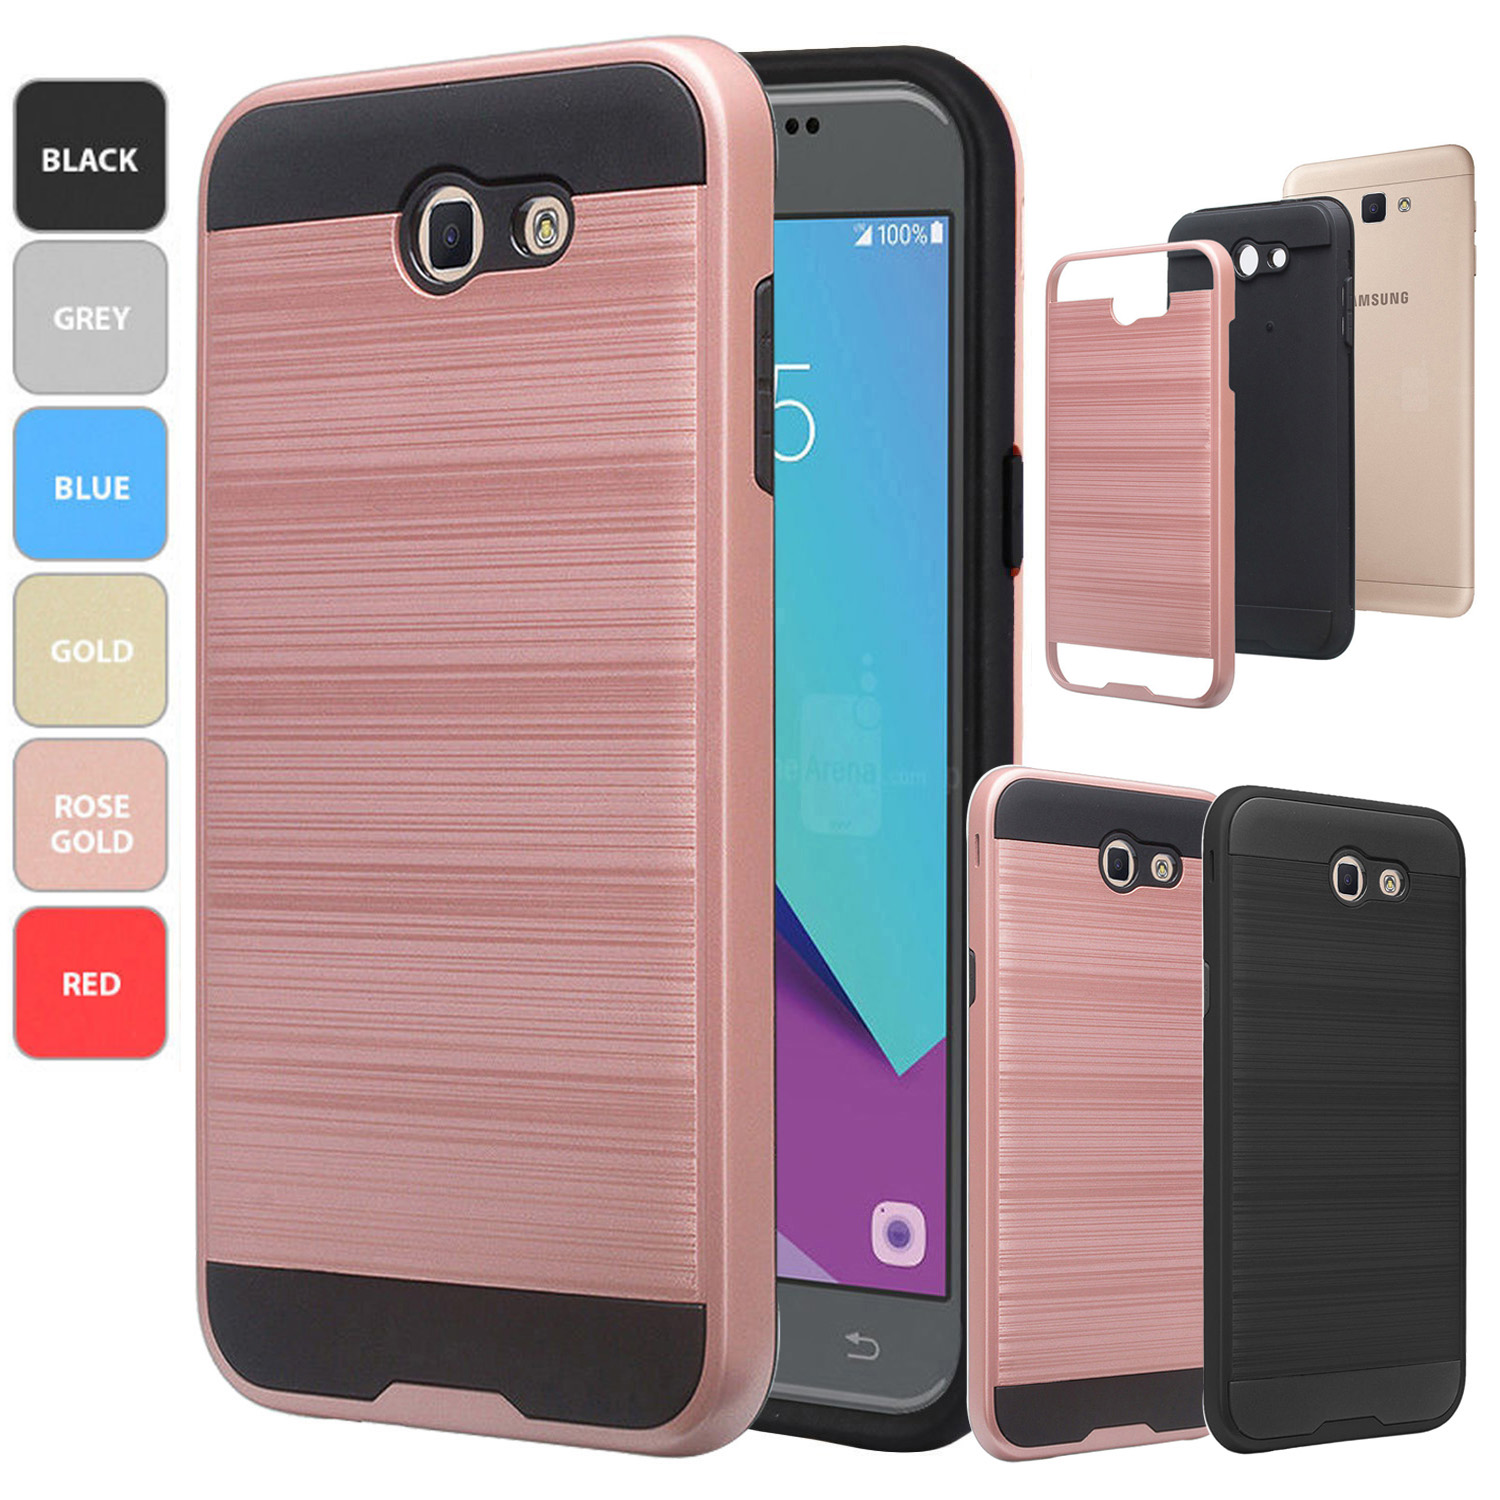 finest selection 369da 50ac4 Details about For Samsung Galaxy J7 Prime / J7 Sky Pro Phone Case  Shockproof Rubber Hard Cover